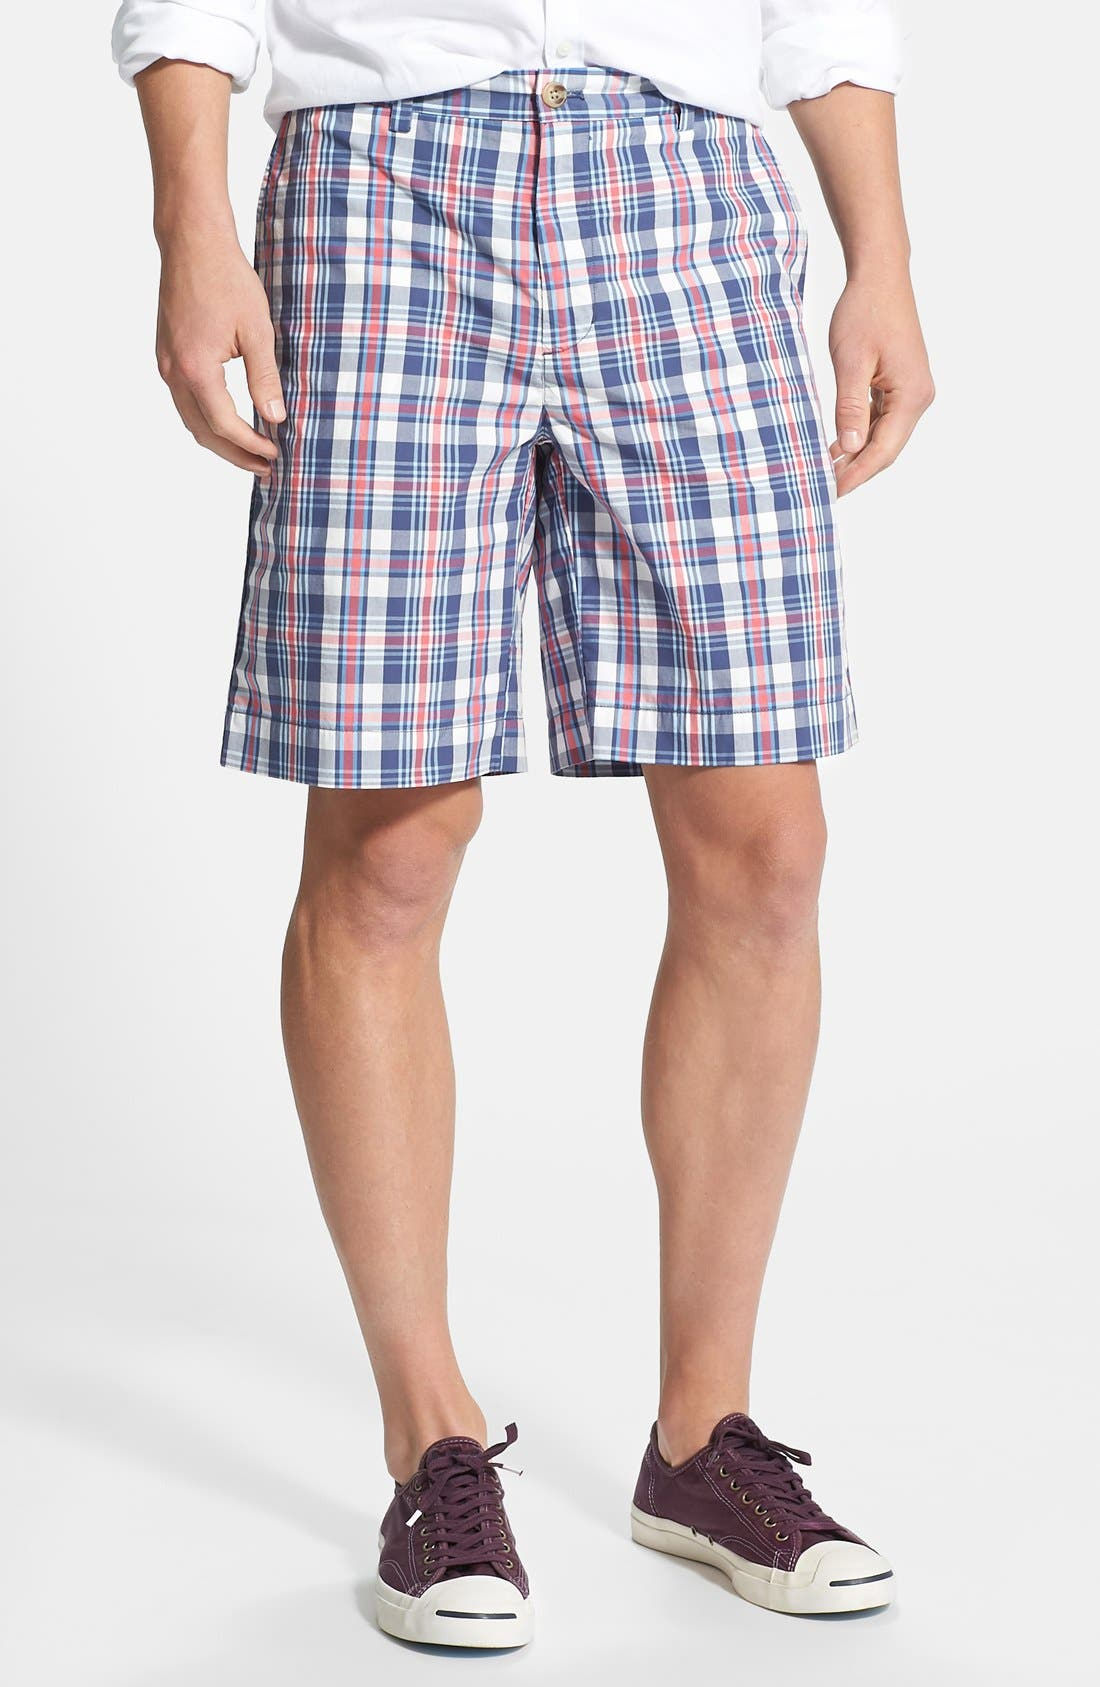 Alternate Image 1 Selected - Vineyard Vines 'Harrington' Classic Fit Plaid Shorts